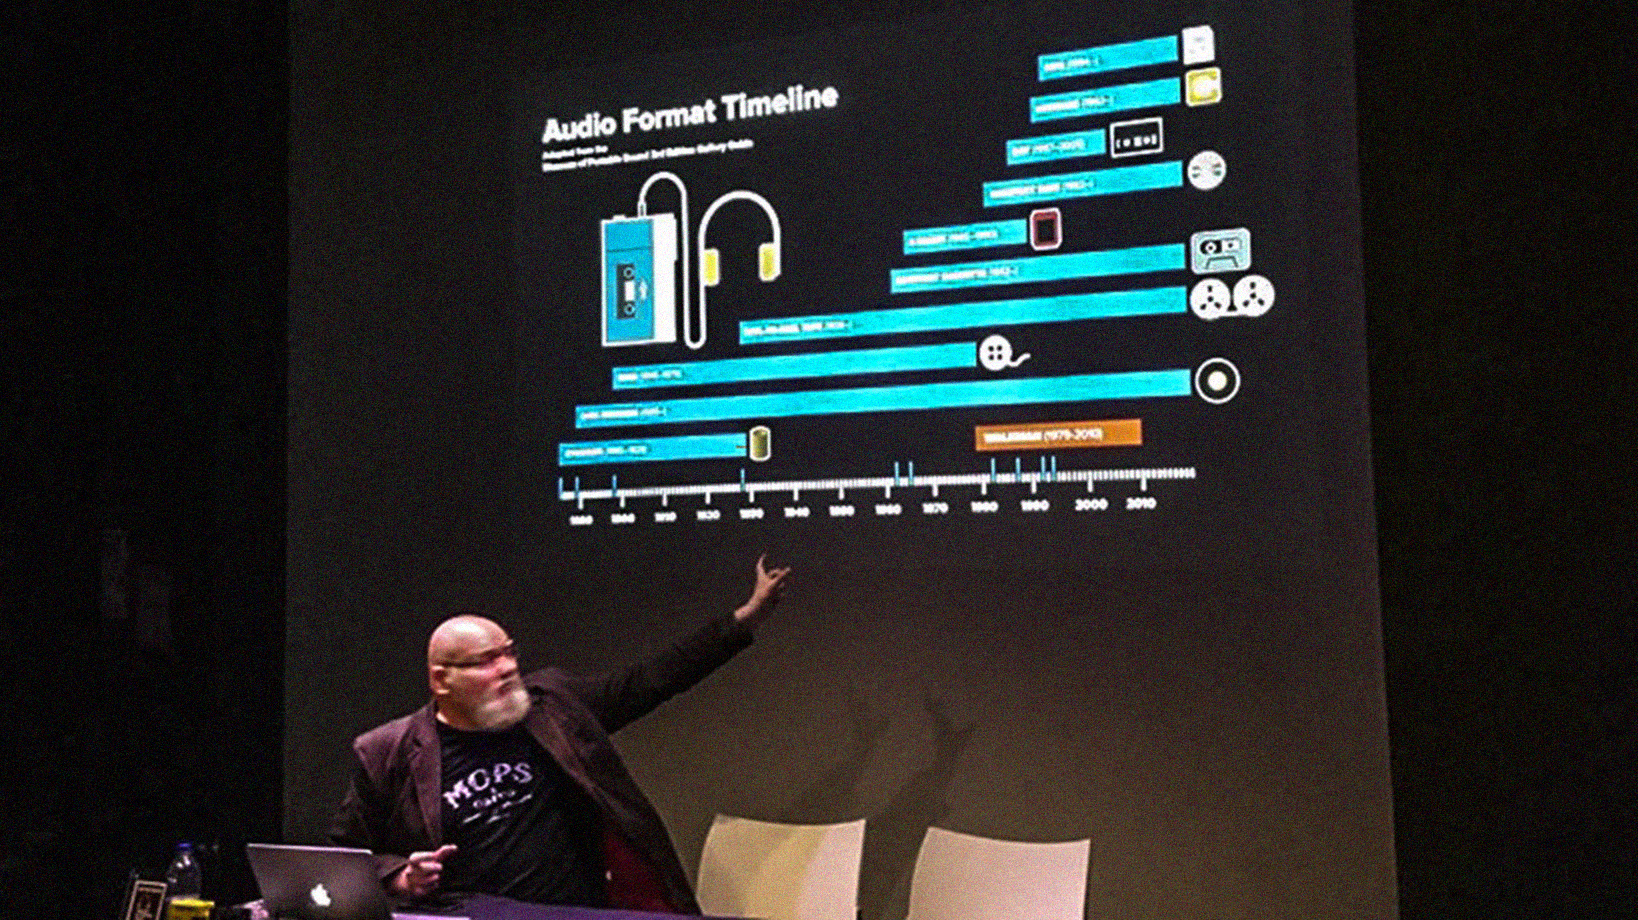 Presenting the Museum of Portable Sound's Audio Format Timeline during the presentation on the history of the Sony Walkman at the National Science and Media Museum, 1 July 2019. Photo courtesy NSMM Curator of Sound Technologies Annie Jamieson.